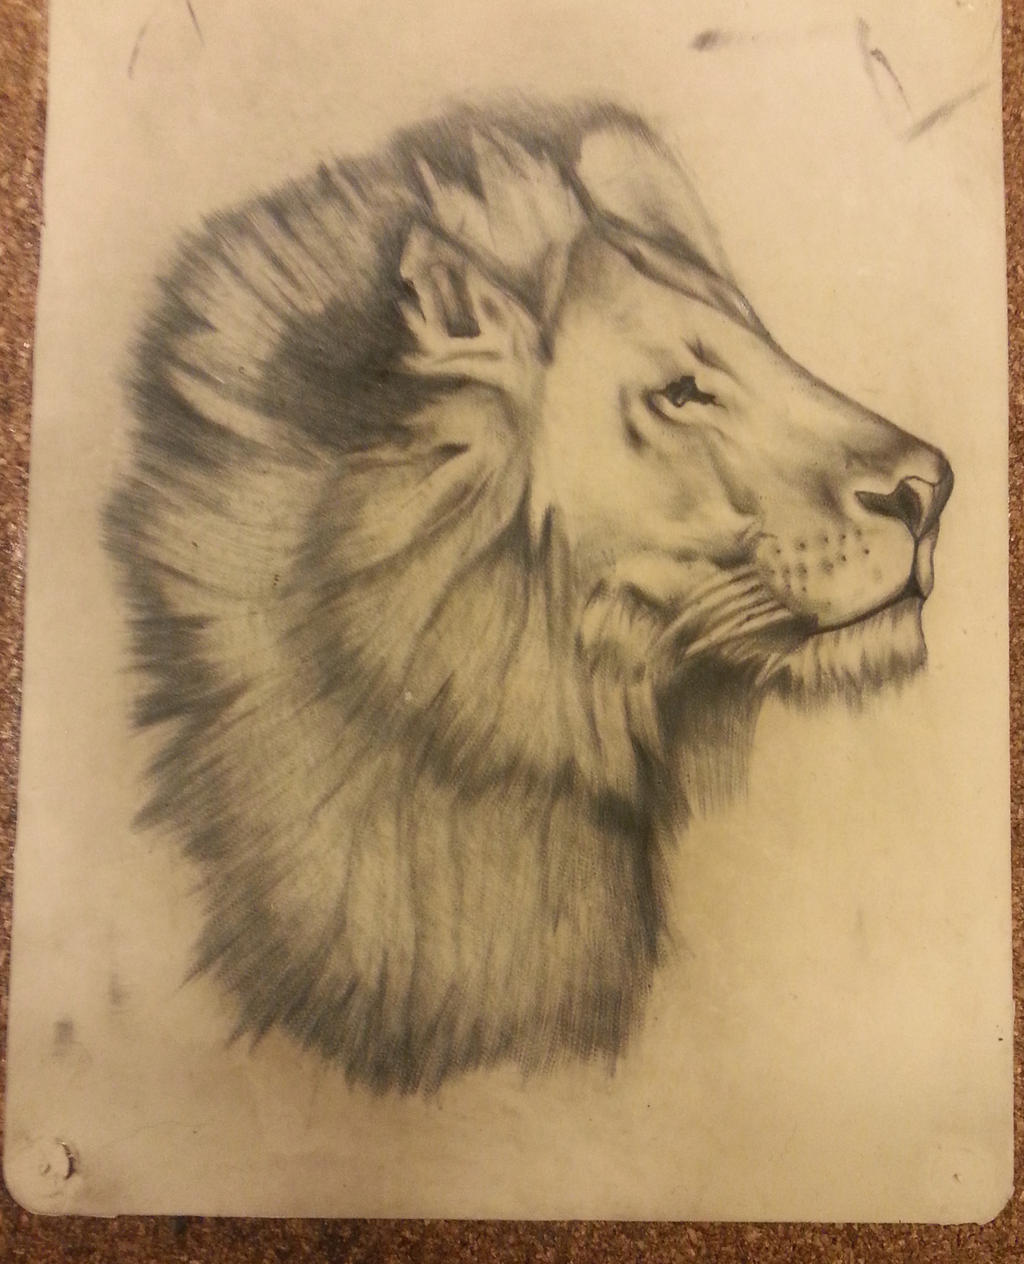 Lion tattoo on synthetic skin by sladatuey on deviantart for Artificial skin for tattooing